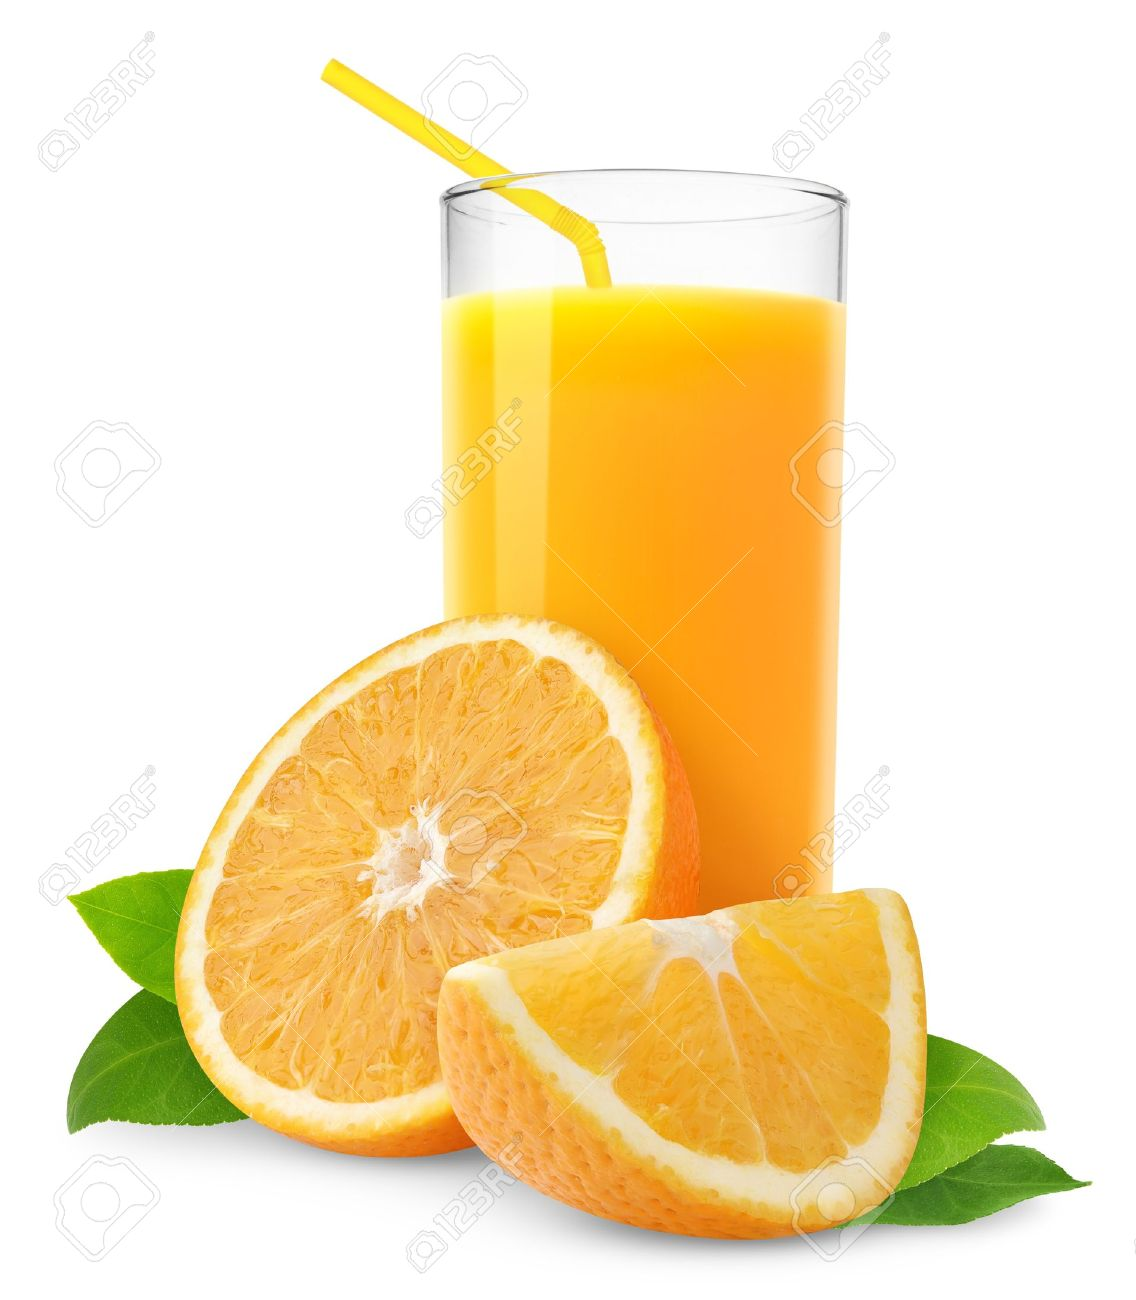 Image%20result%20for%20orange%20juice